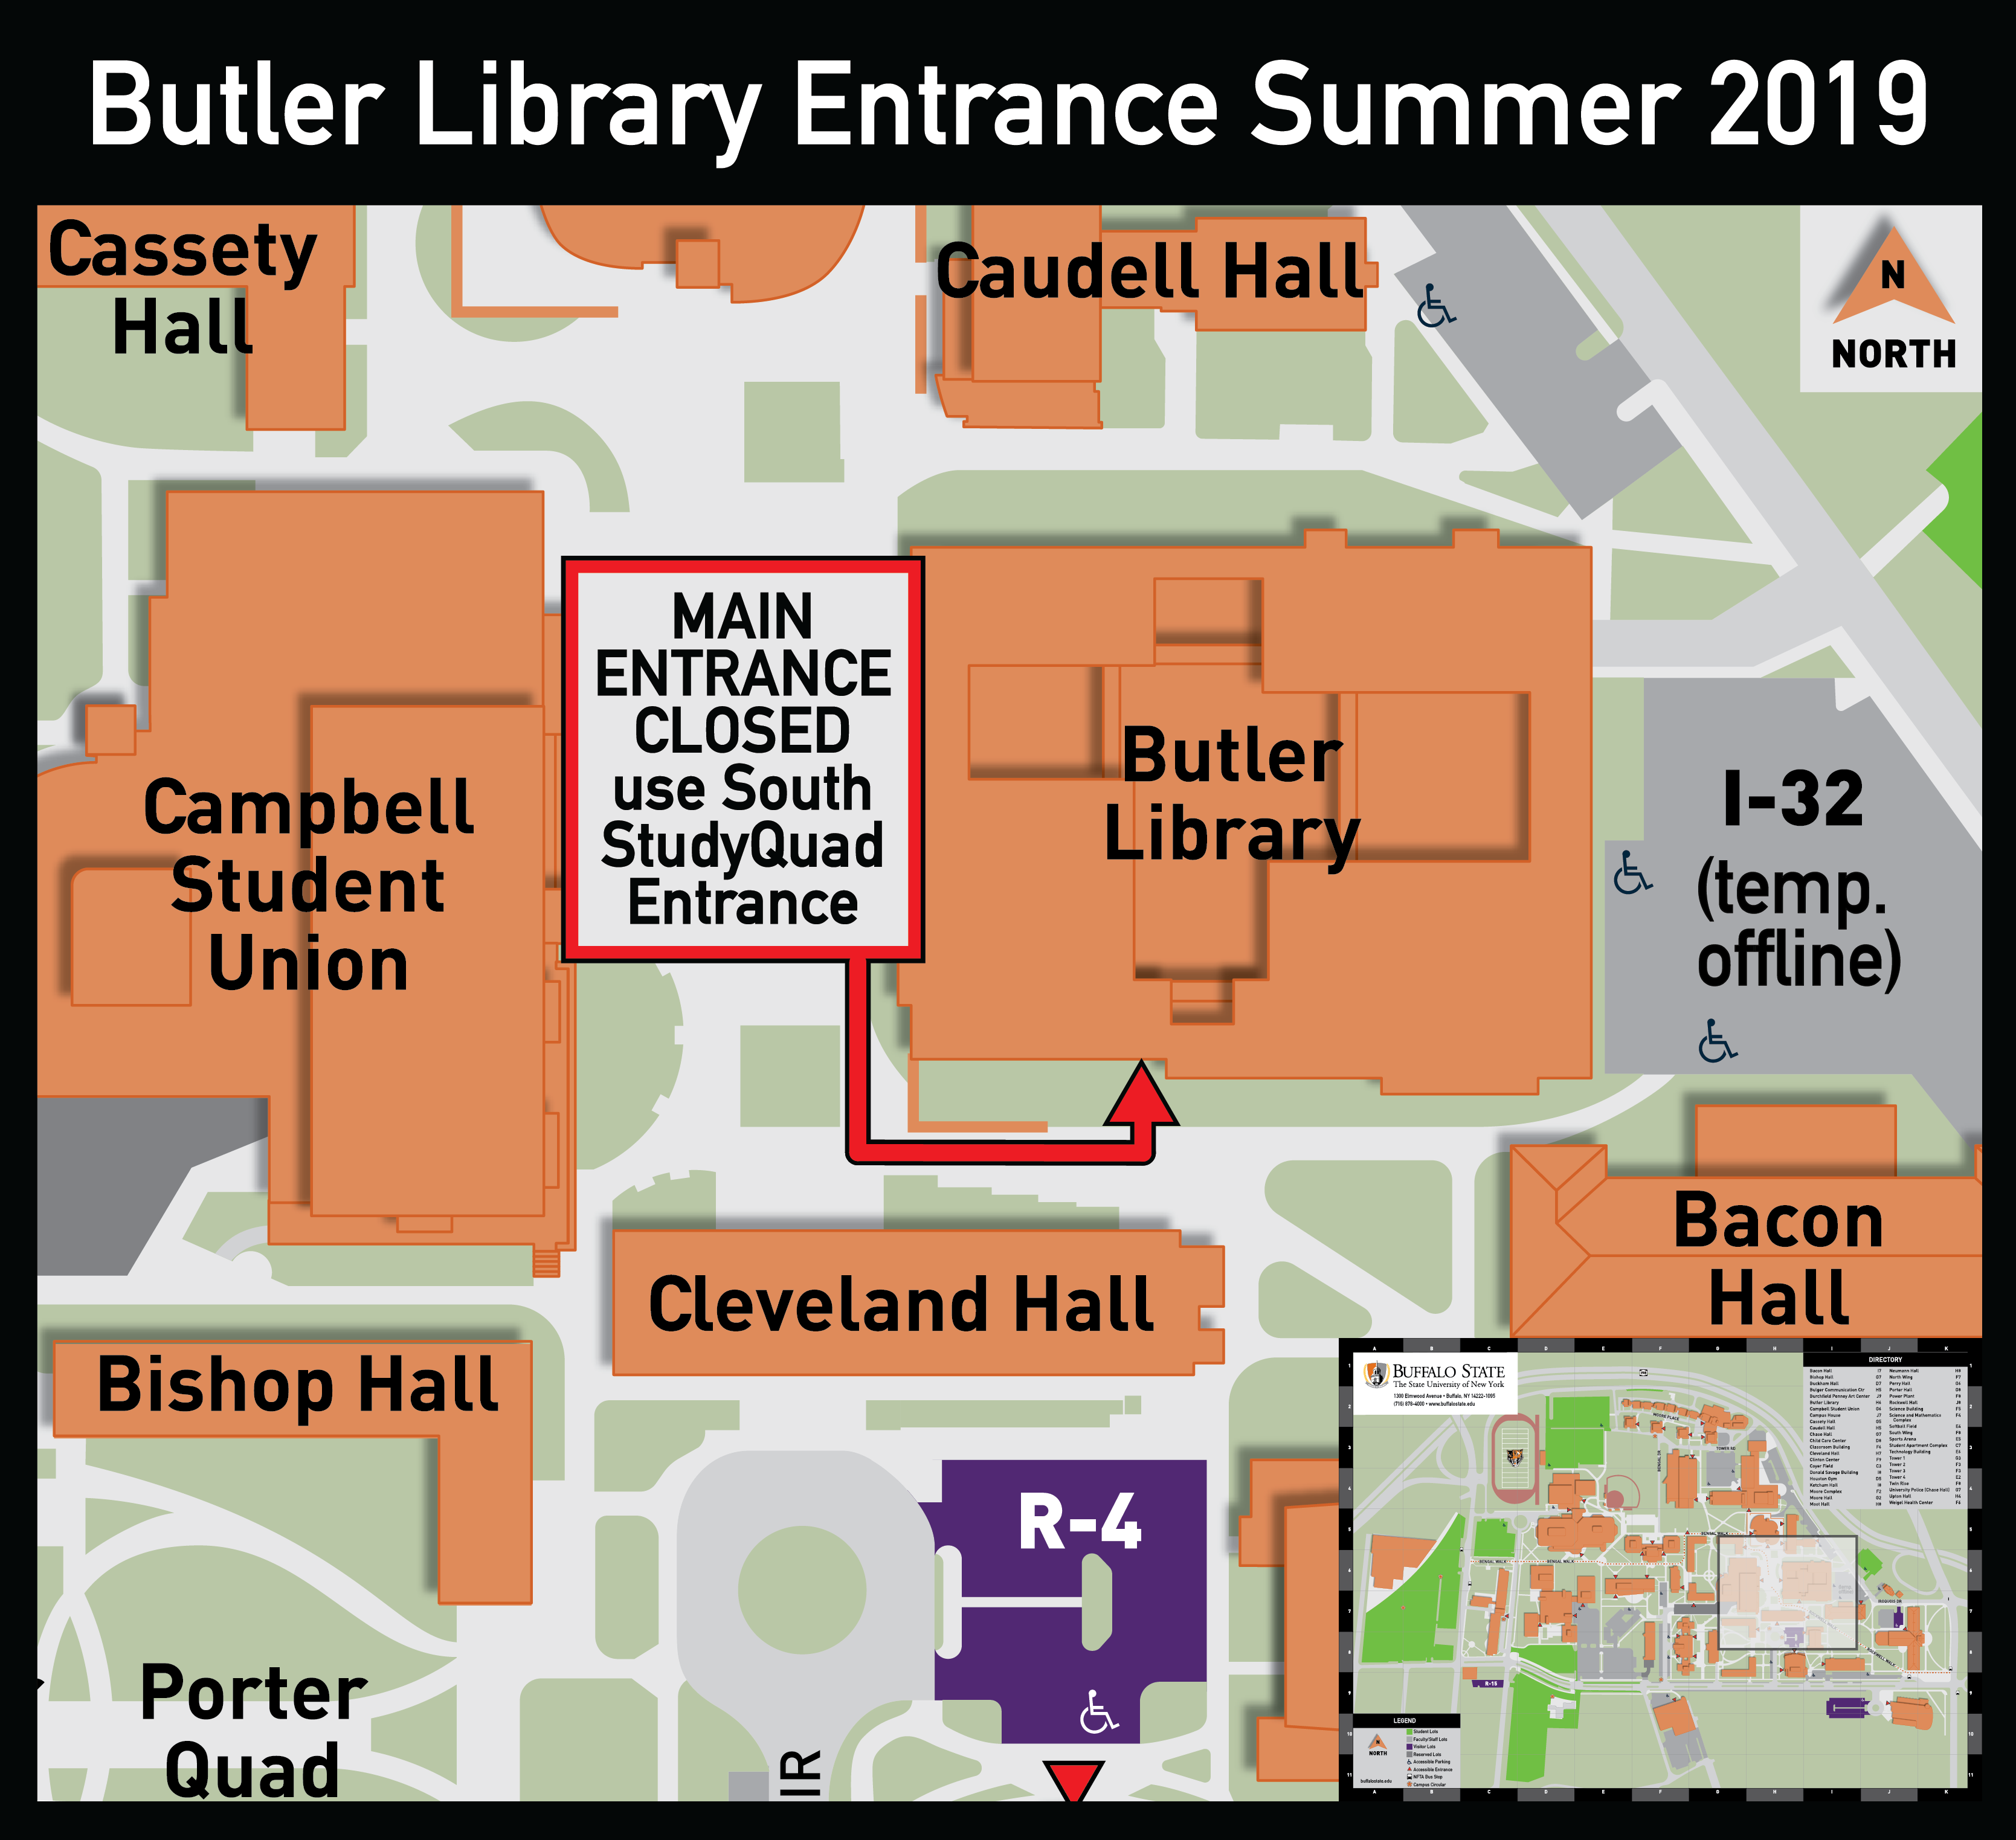 Campus map highlighting the library's main entrance closure and route to the South (StudyQuad) entrance.